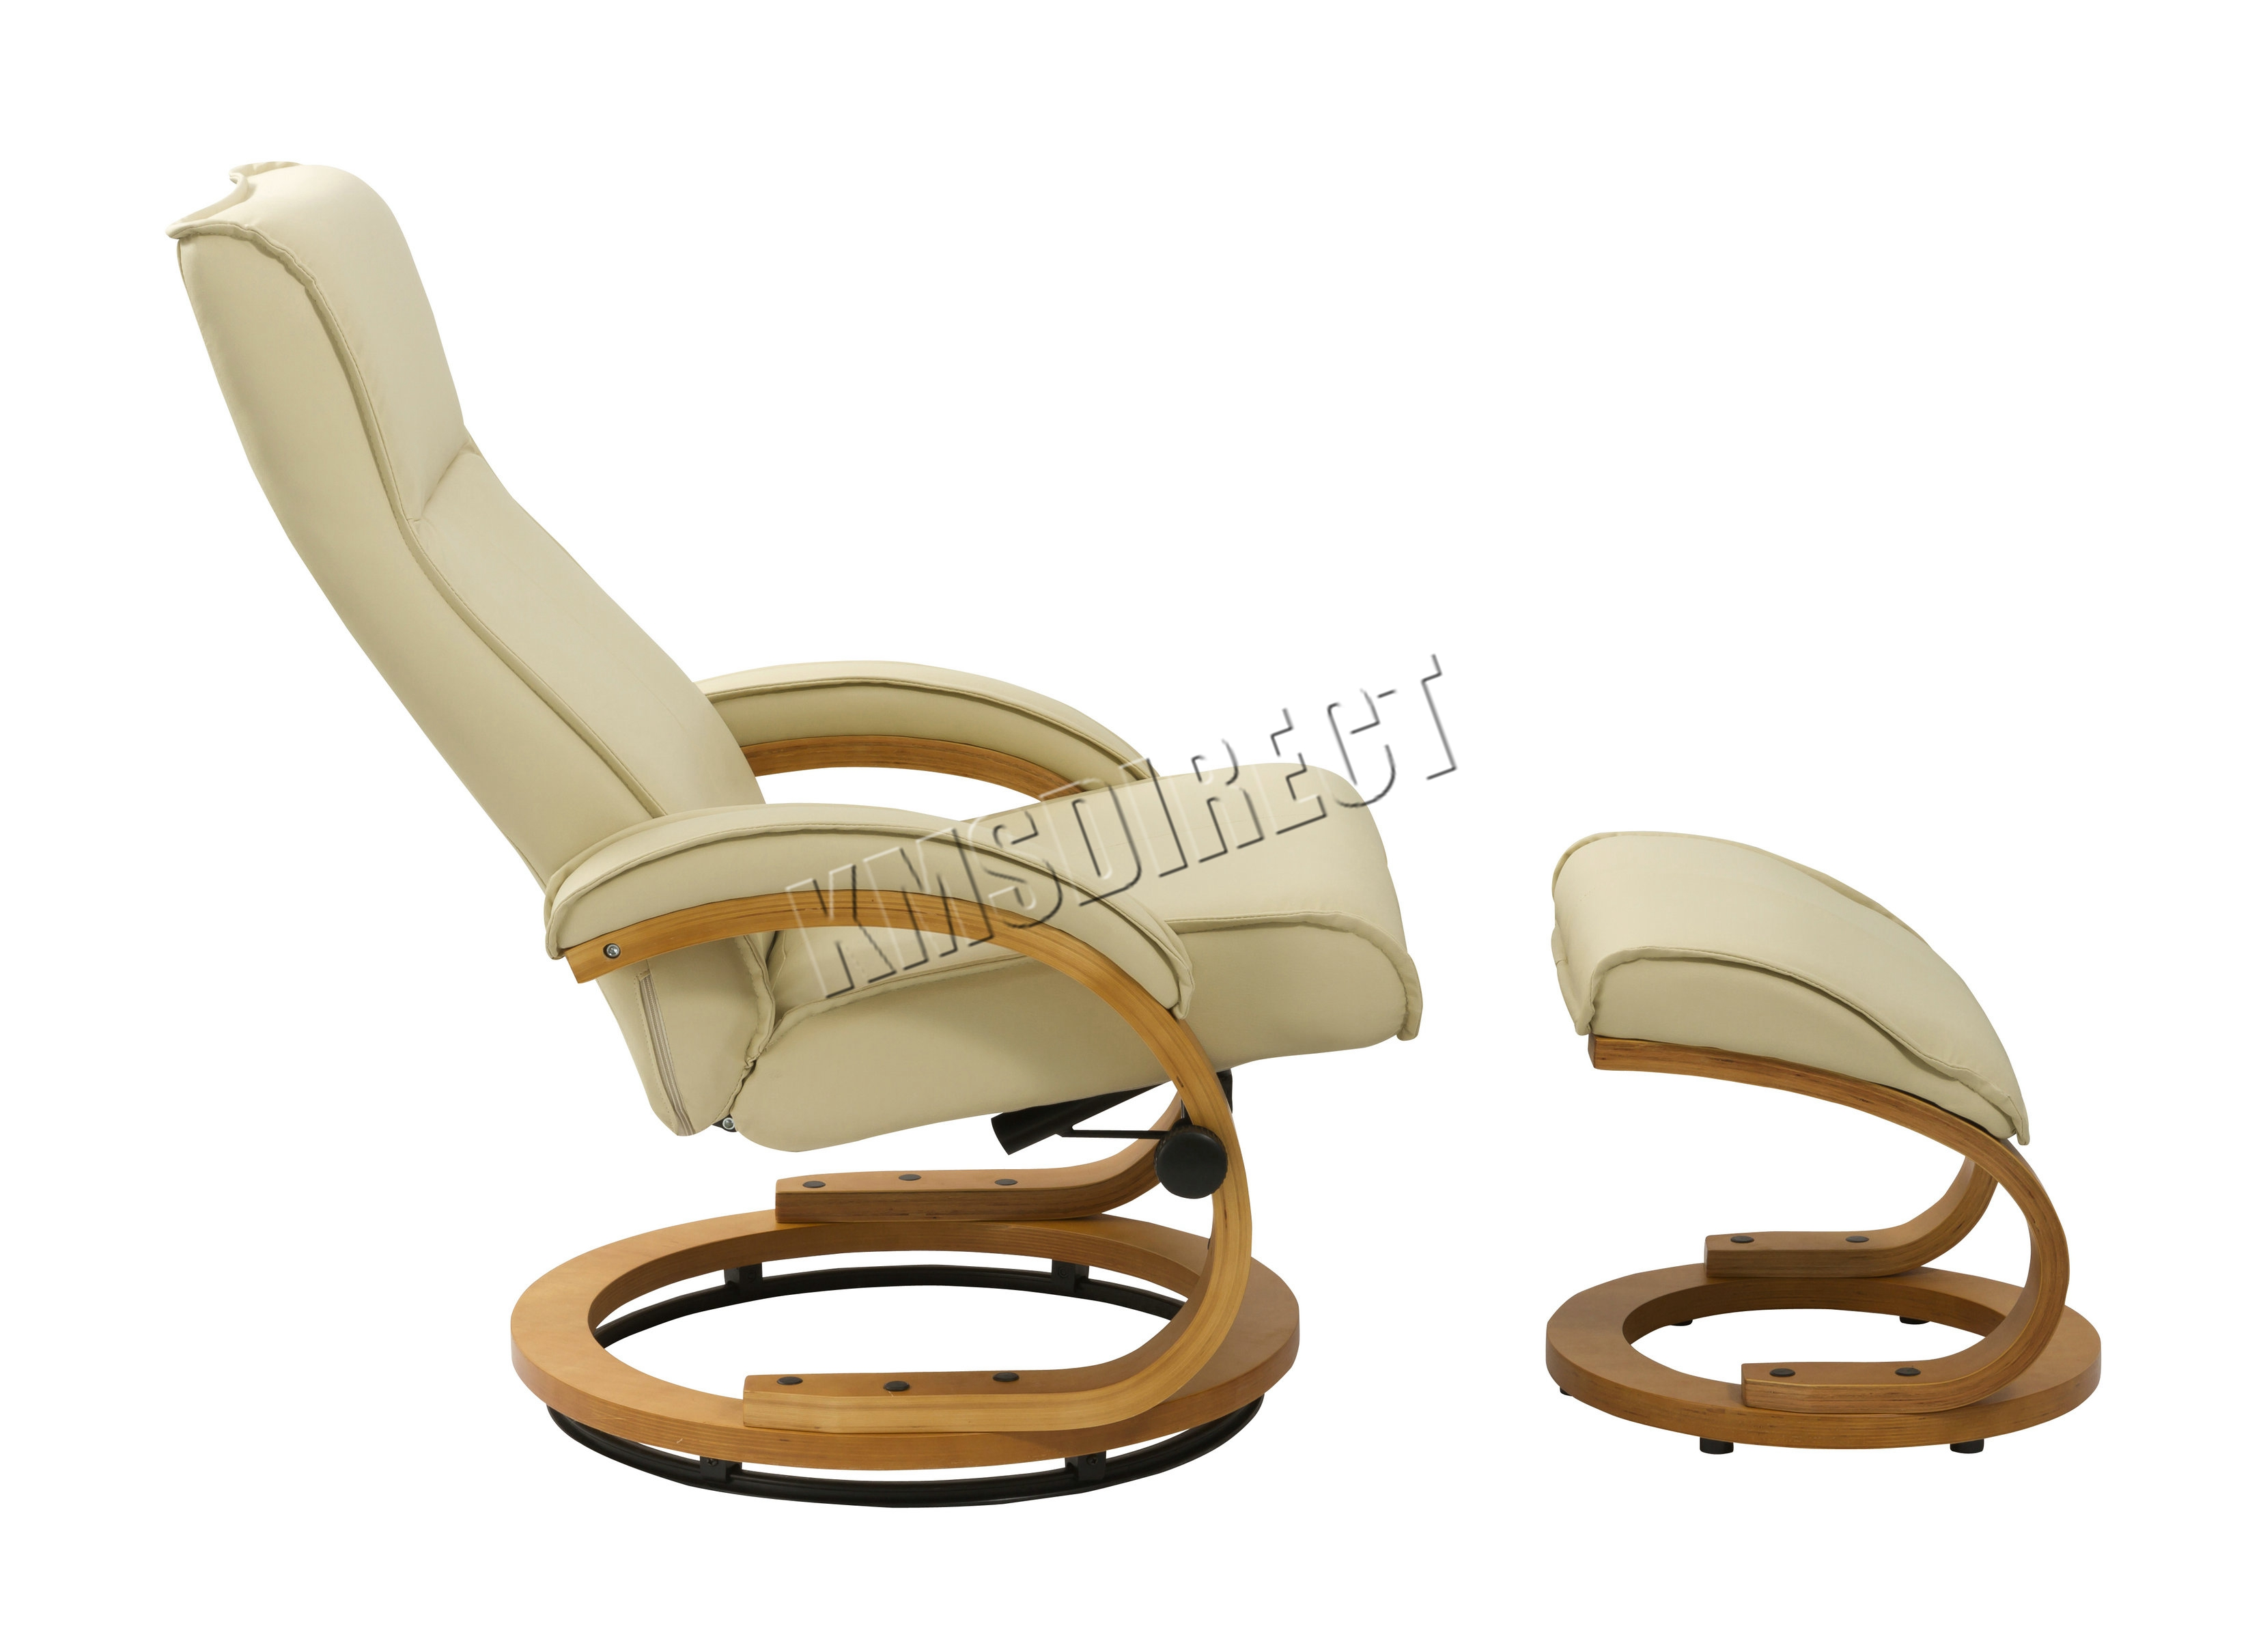 Foxhunter executive recliner pu arm chair swivel lounger seat foot stool rcs03 ebay - Swivel feet for chairs ...